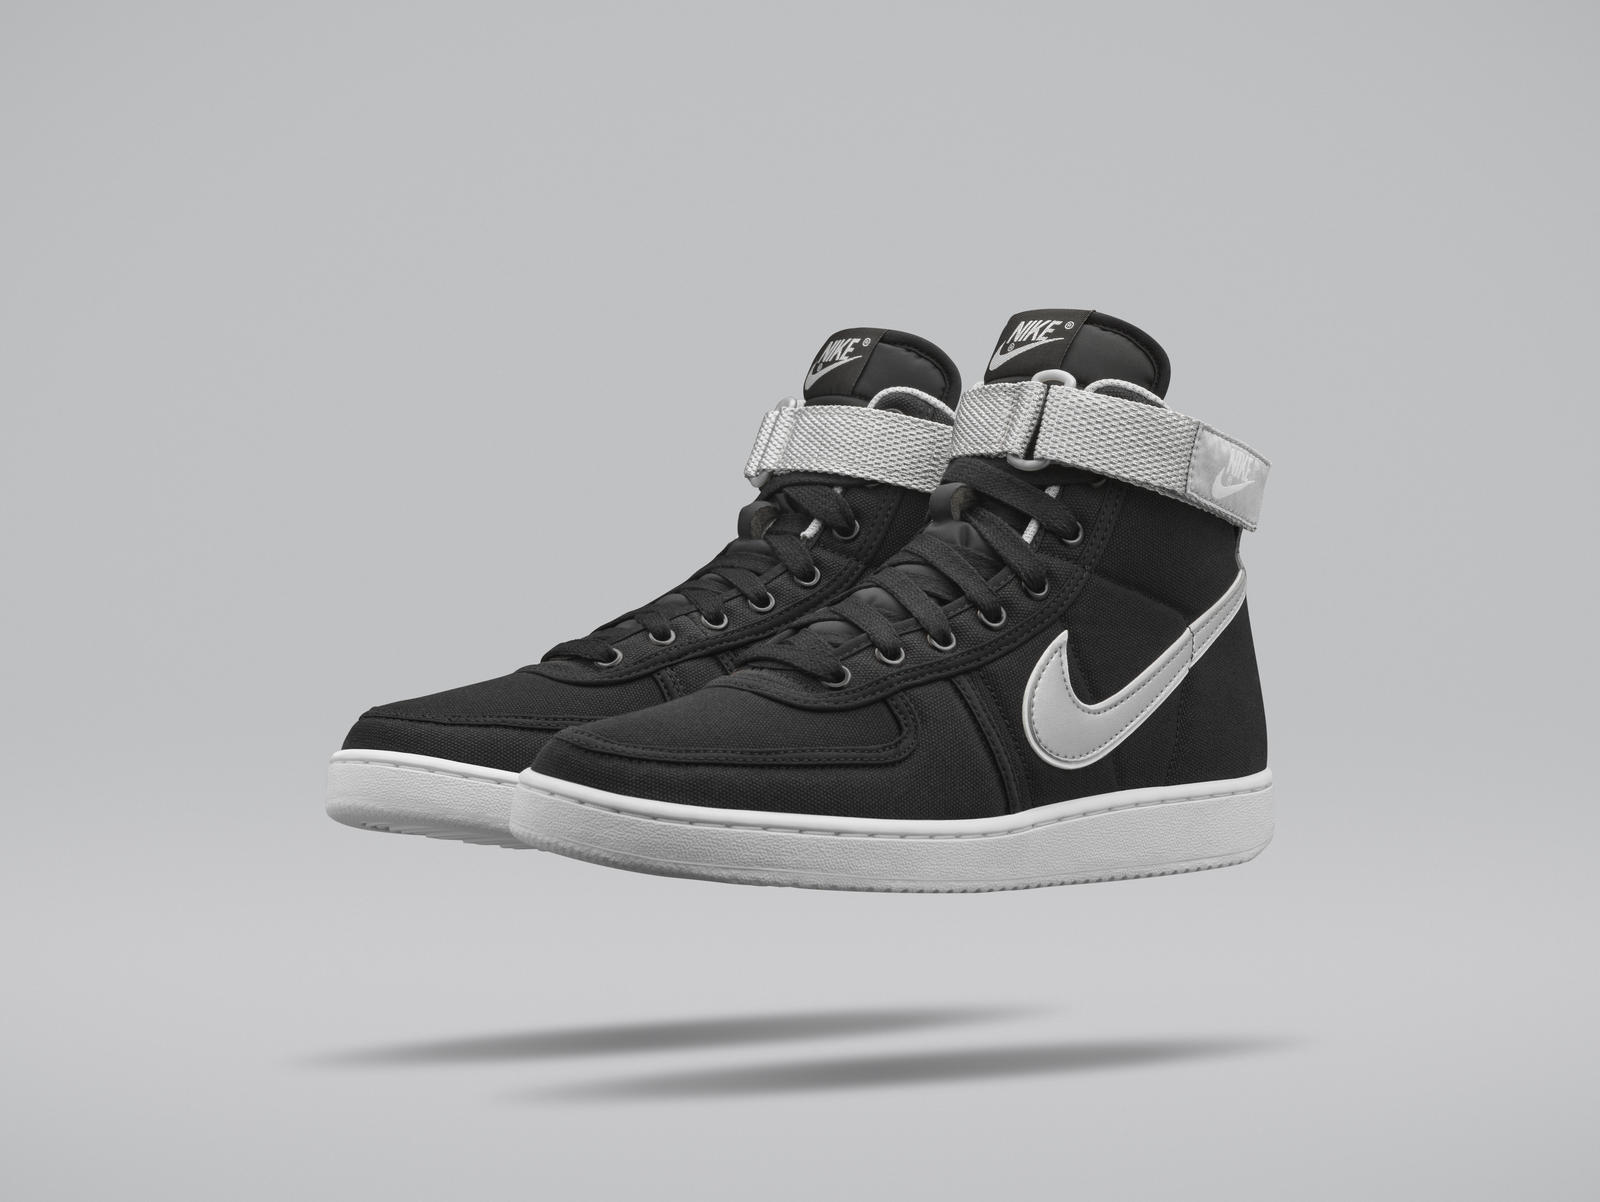 NikeLab Vandal High Supreme